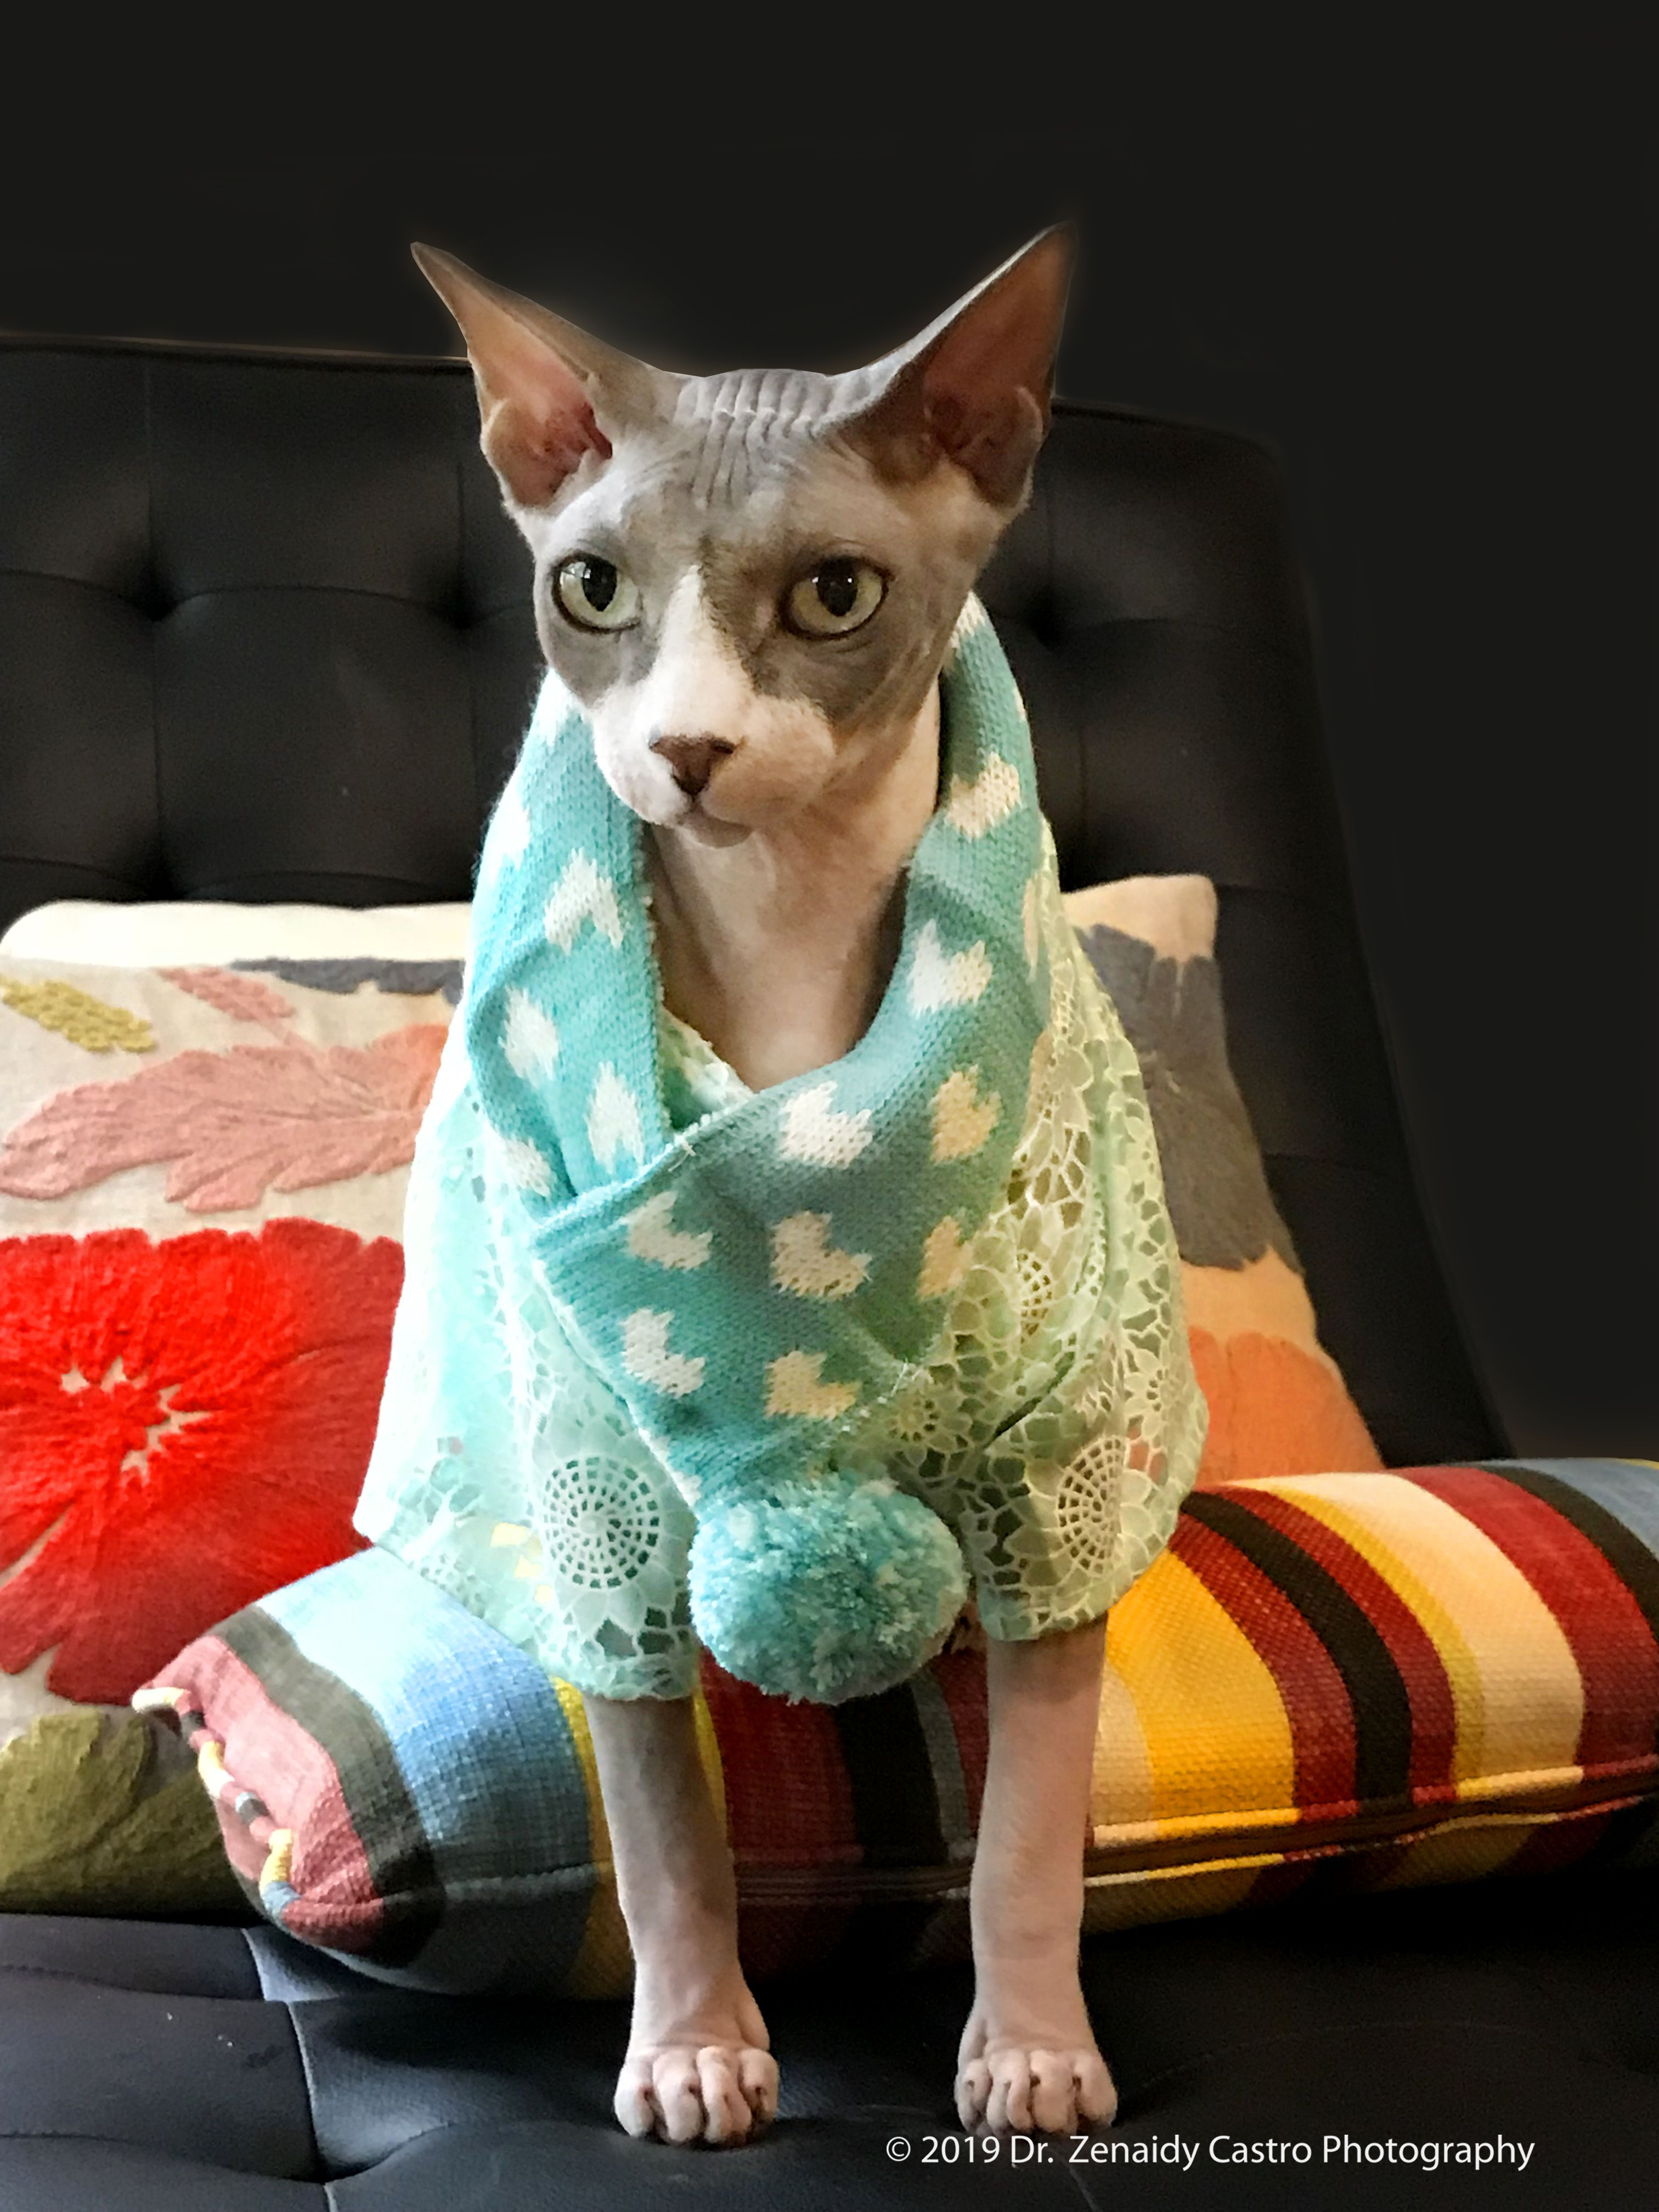 Pin By Dentist In Melbourne Dr Zenaid On Cute Pet Sphynx Cats In Costumes Kittens In Costumes Losing A Dog Animal Society